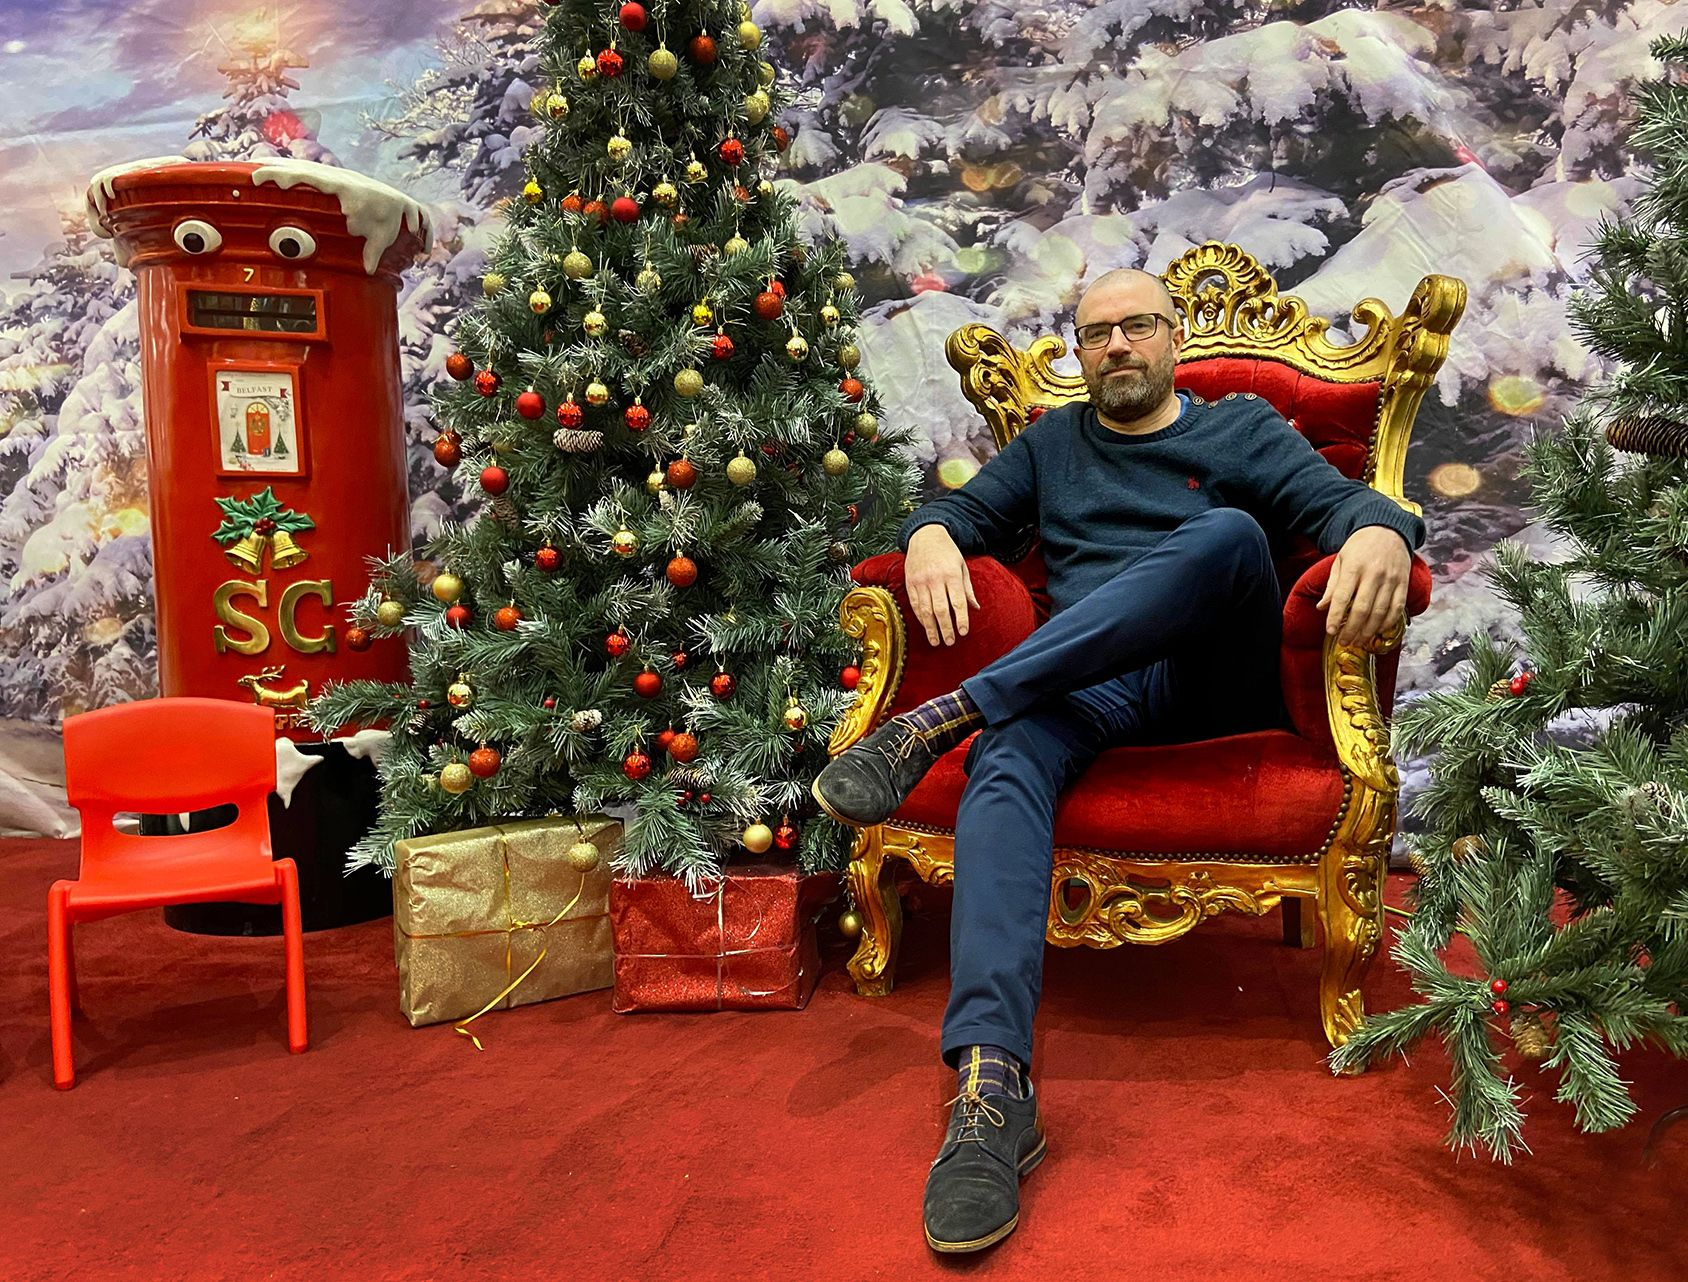 Fáilte: John Jones, Manager of the Kennedy Centre, will be a busy man in the run up to Christmas